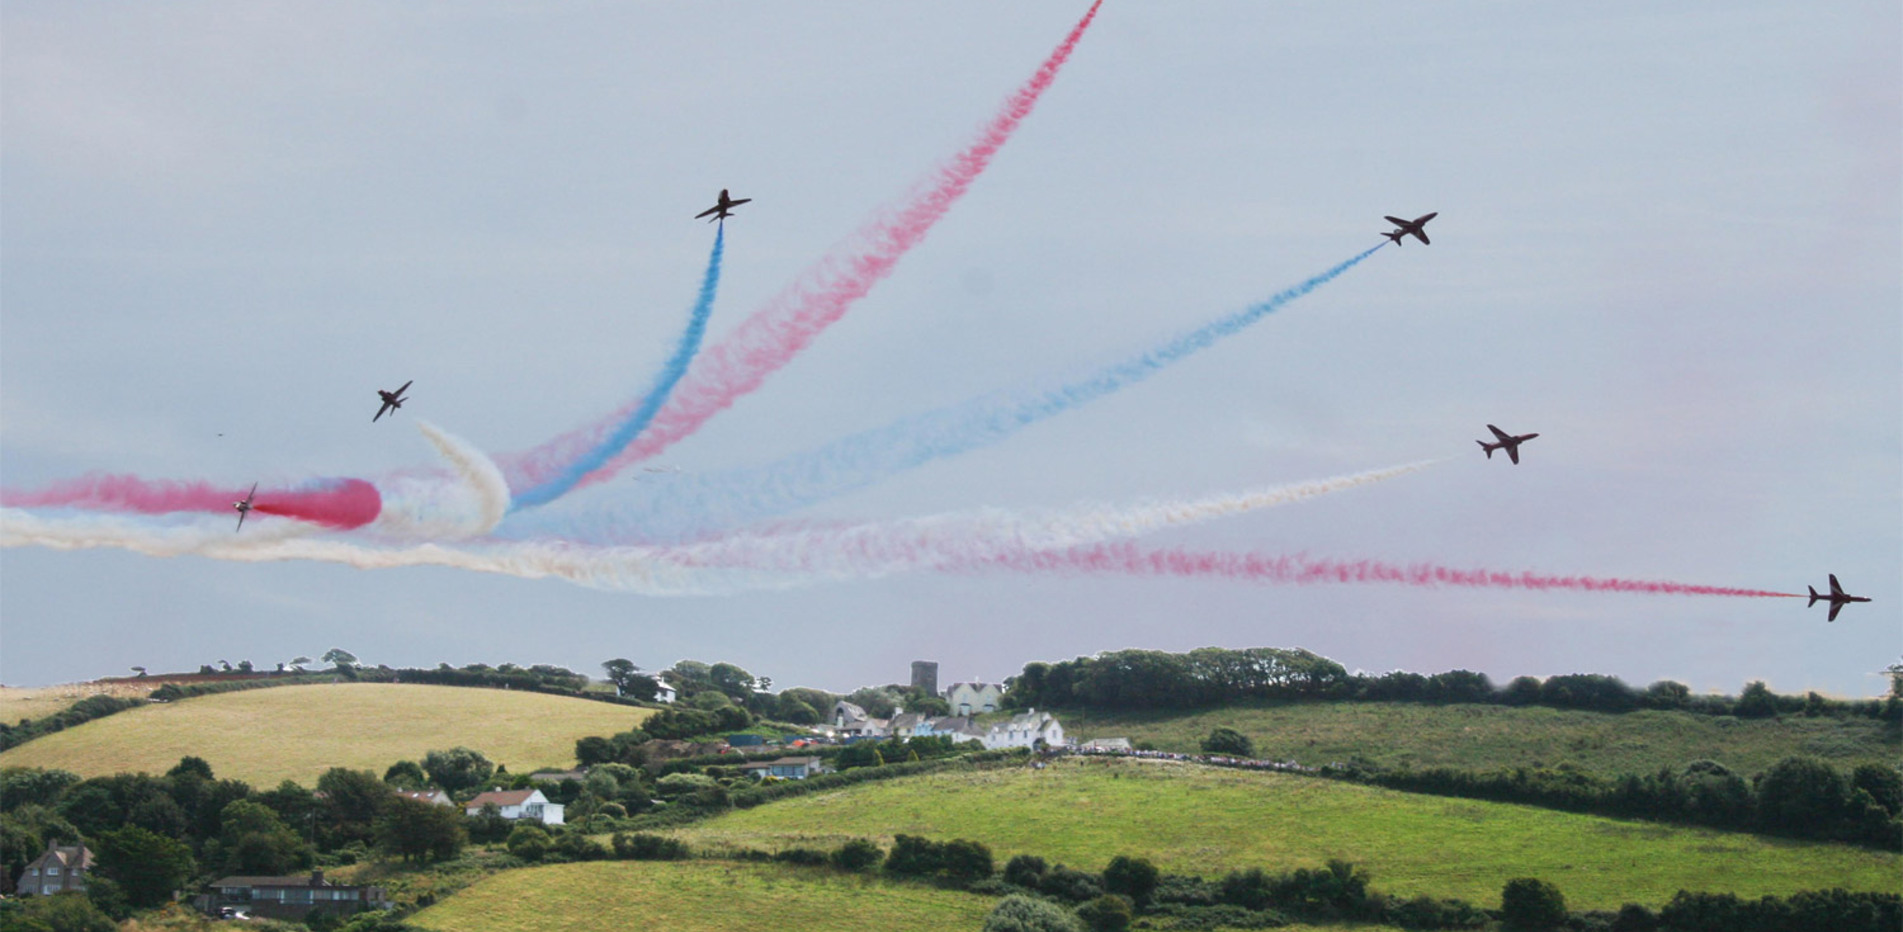 The Red Arrows display taken from the cottage